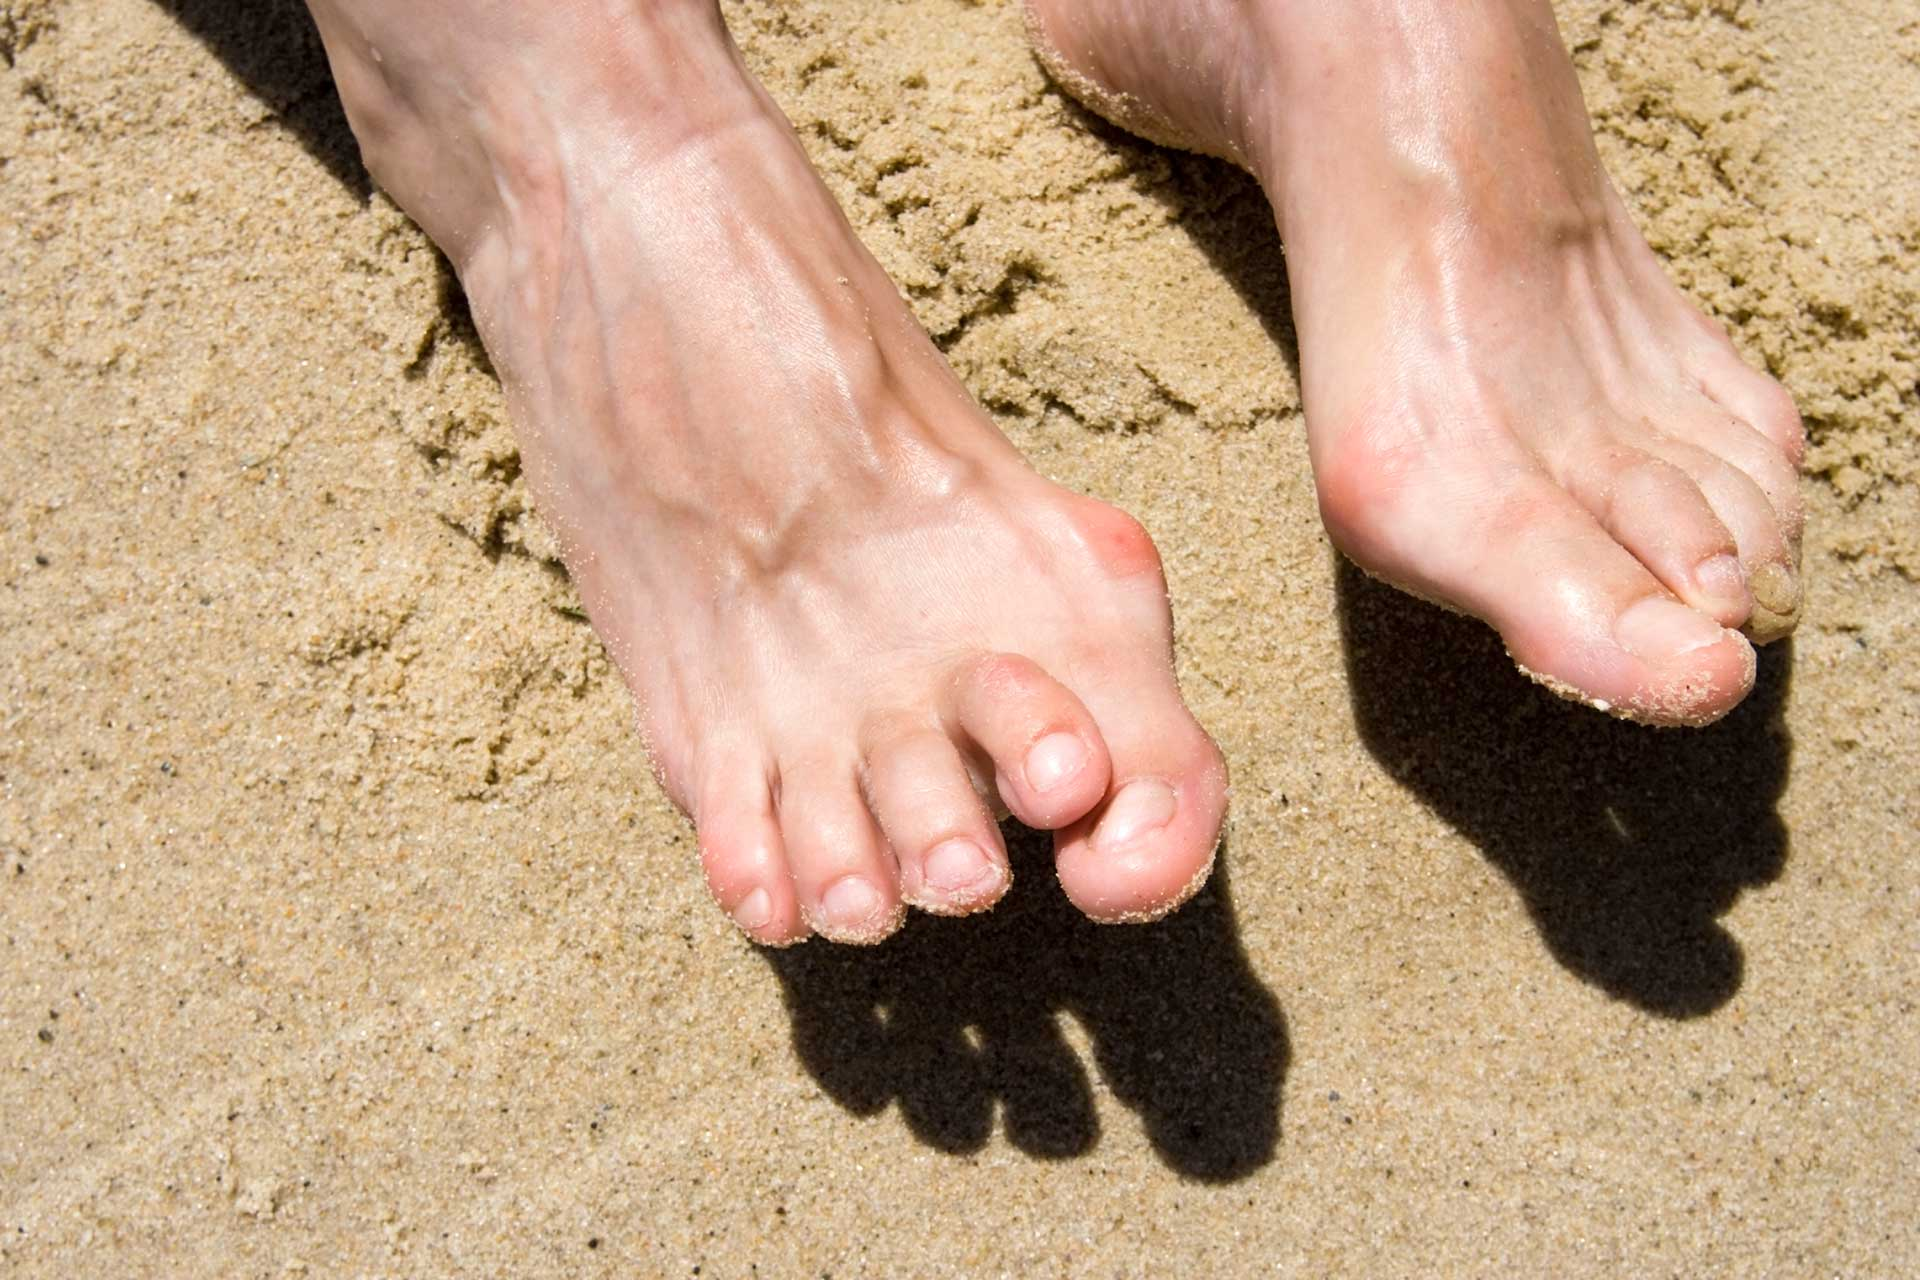 Wearing Flip Flops May Lead to Hammer Toes